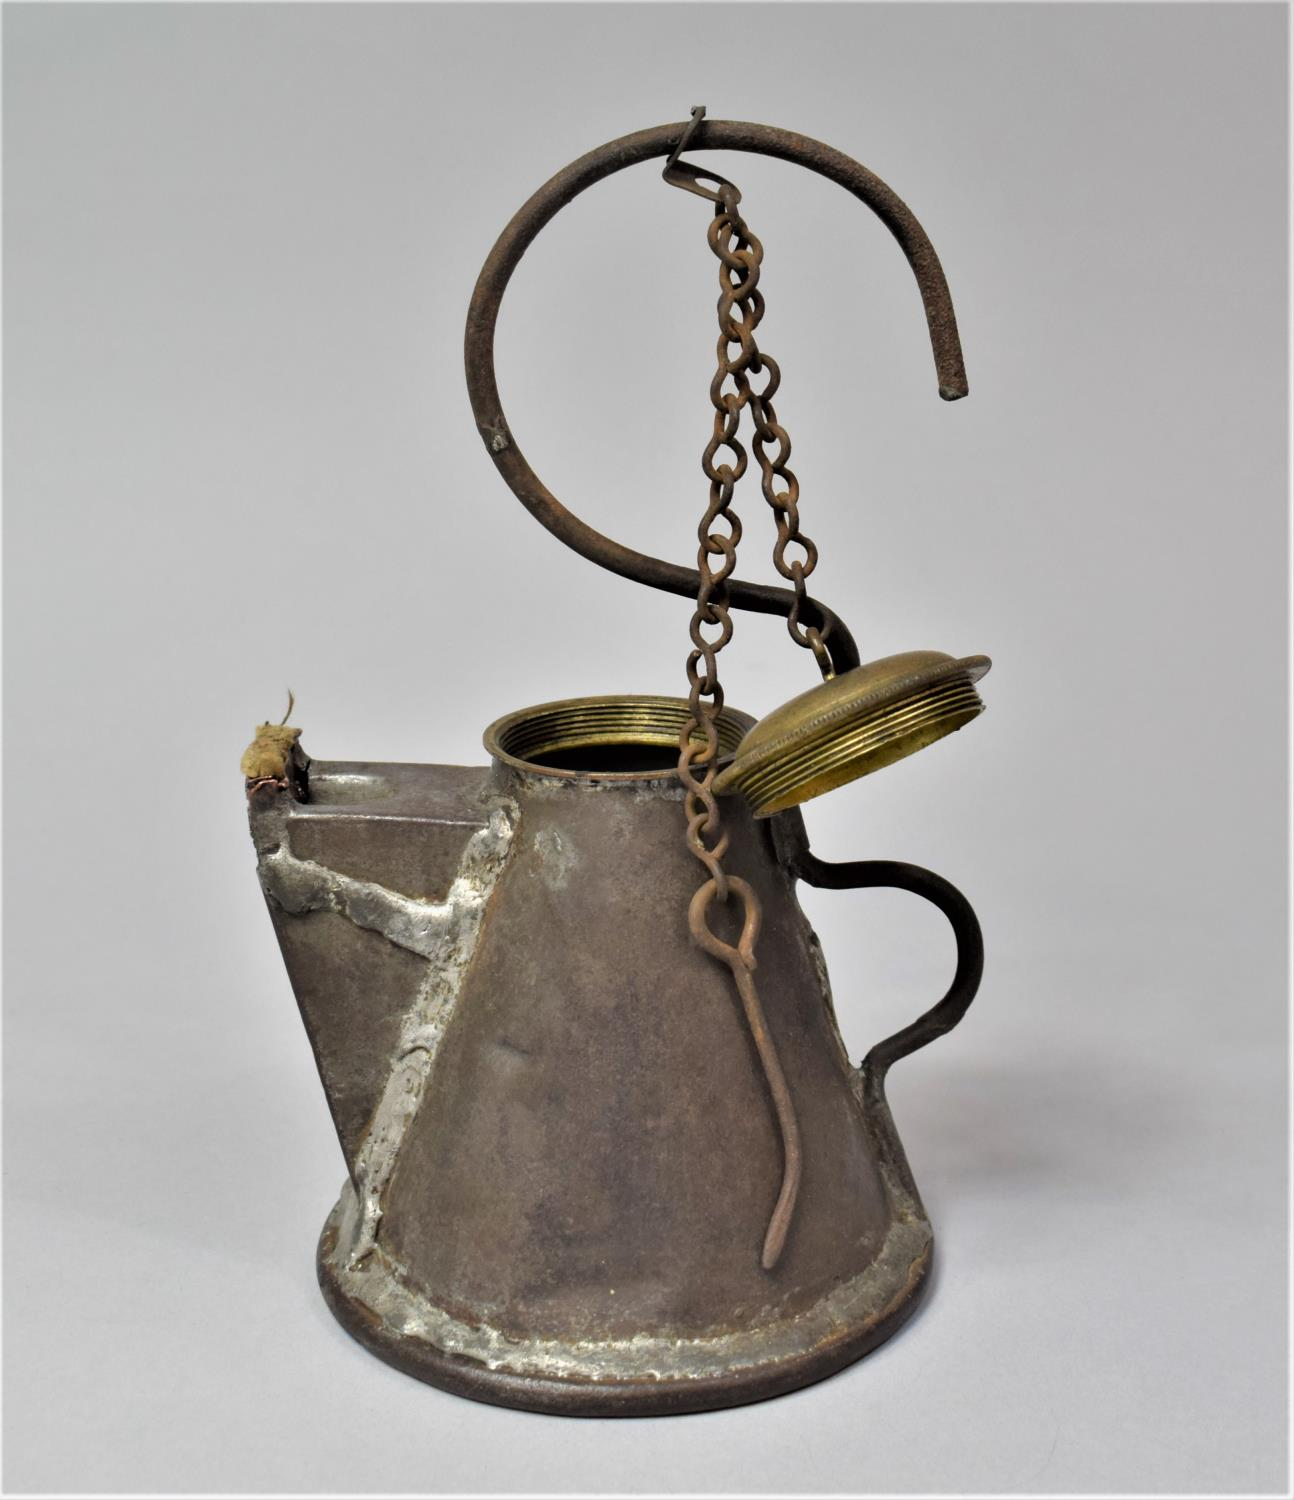 A Late 19th Century Scottish Miner's Coal Face Tallow Lamp of Teapot Form with Screw Off Lid, 21cm - Image 7 of 7